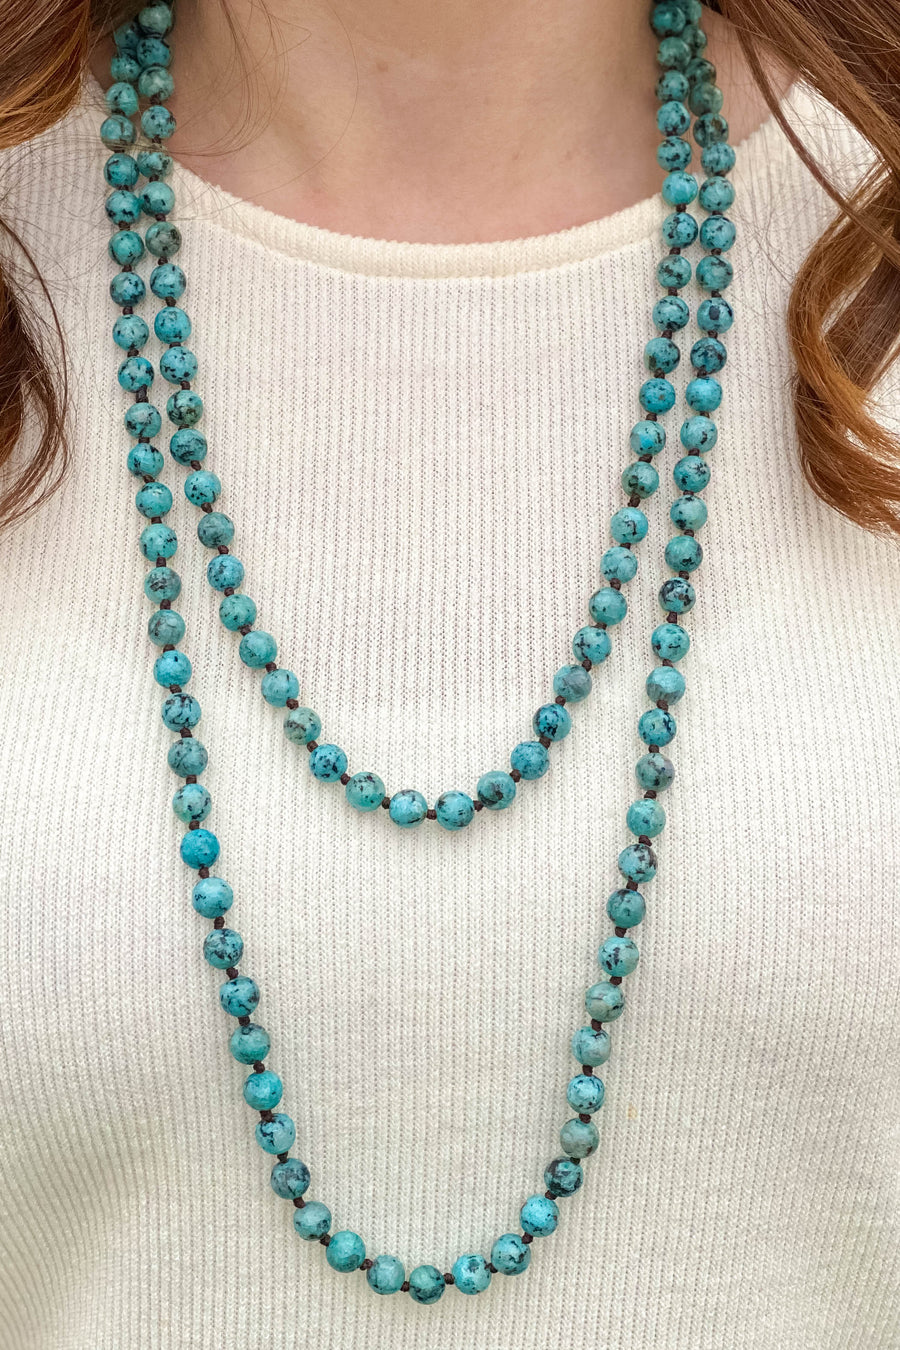 Blue Marbled Necklace